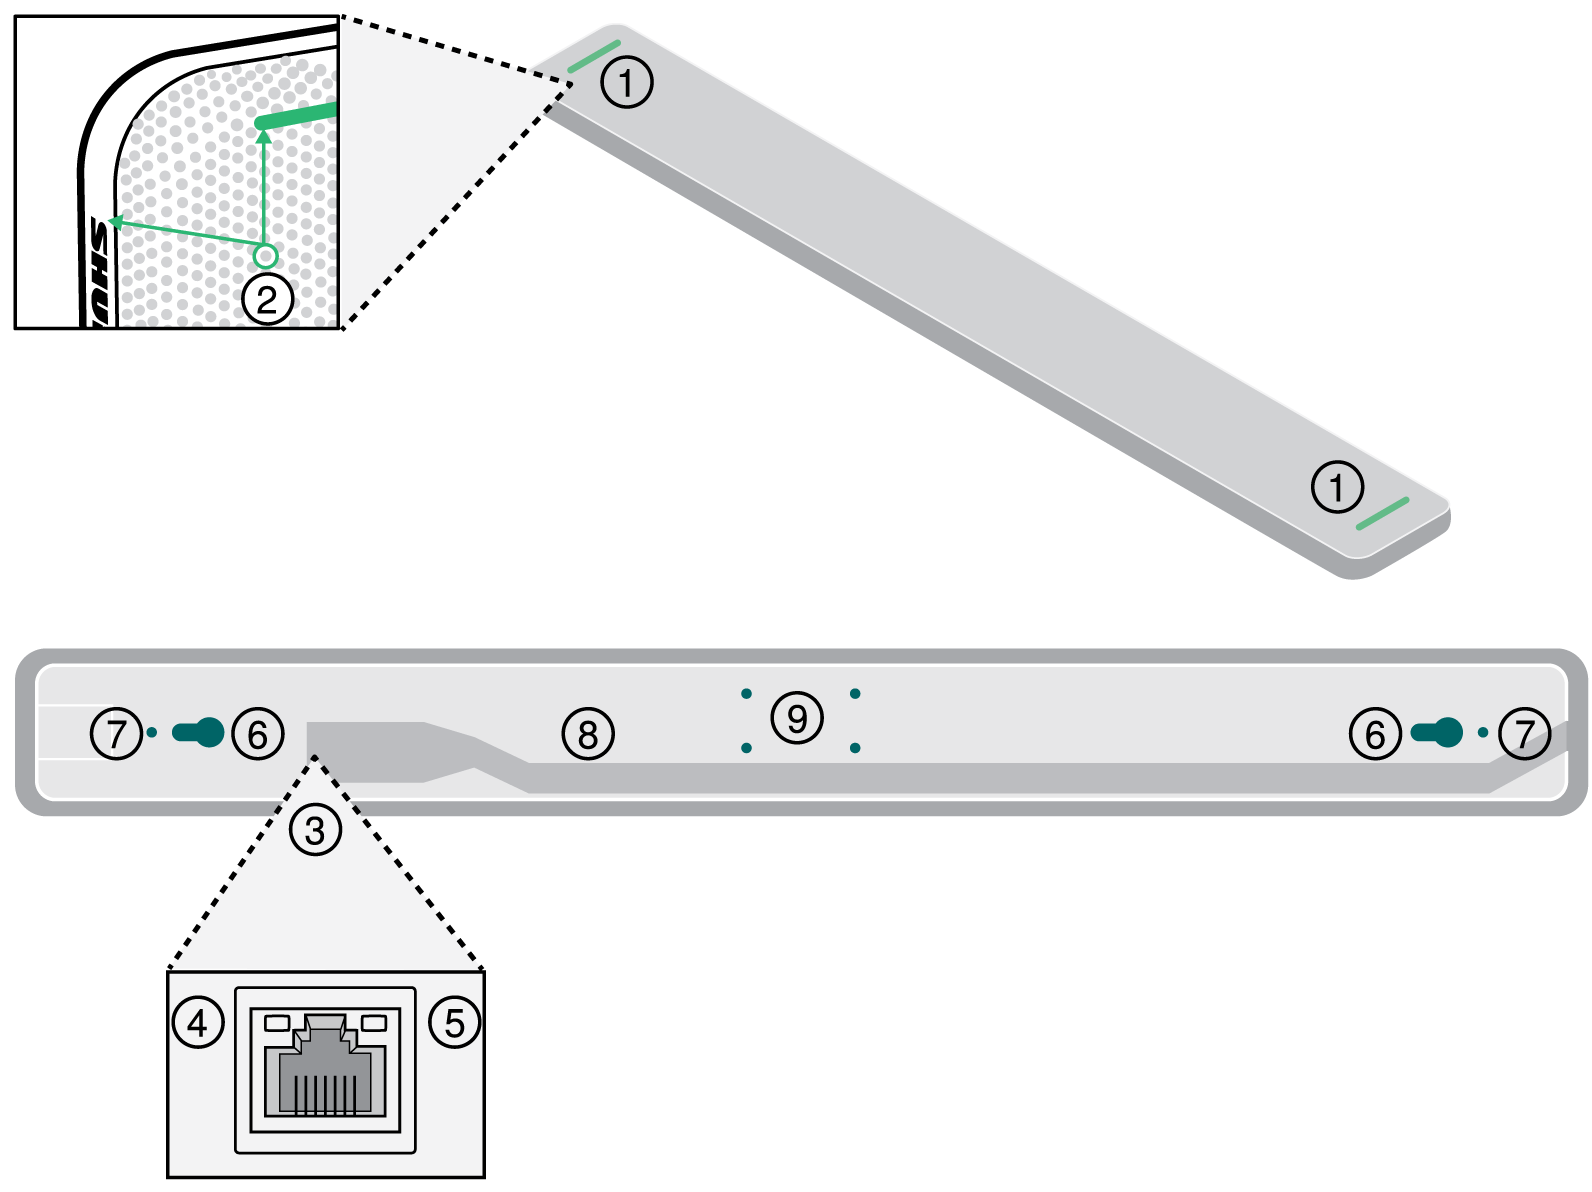 Numbered diagram showing the different parts of an MXA710 microphone.